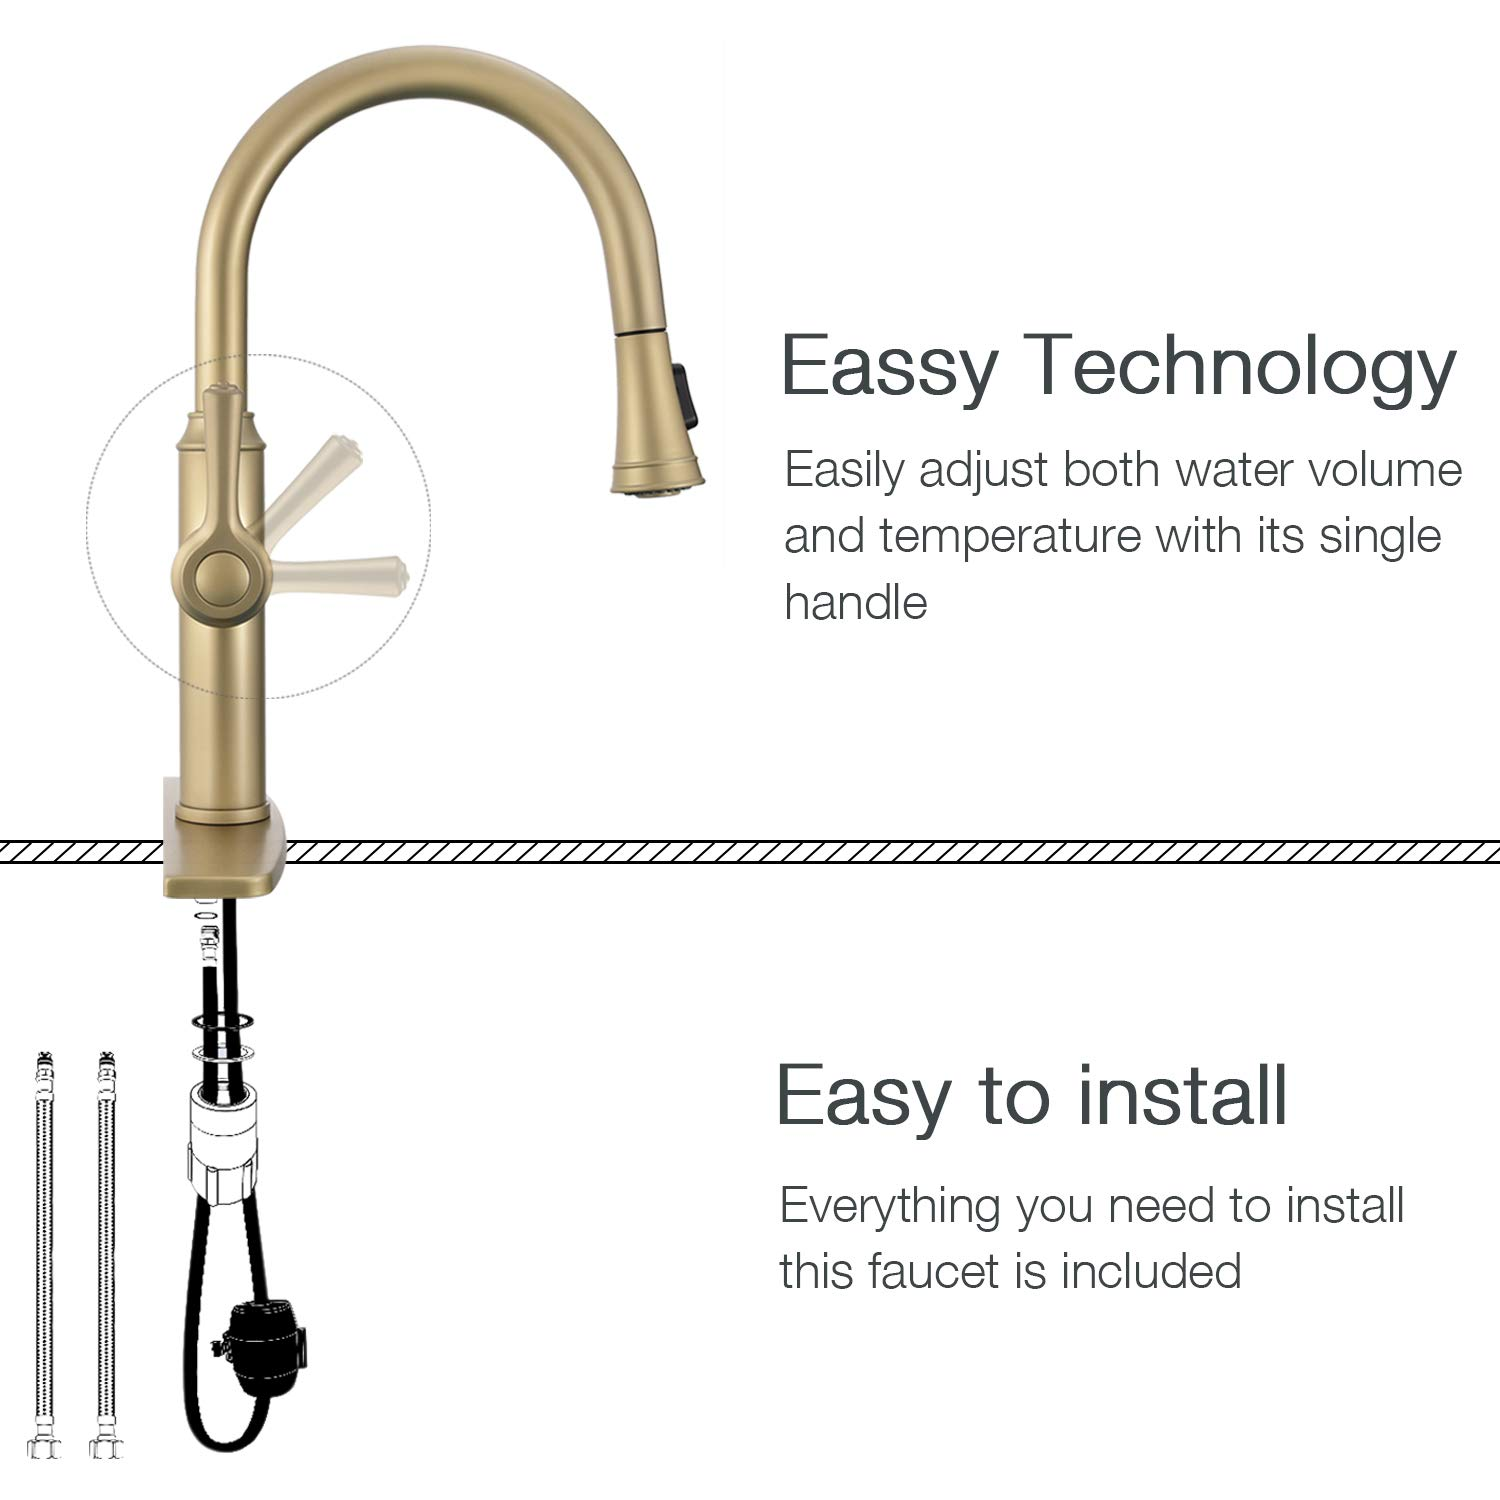 Peppermint Kitchen Sink Faucet Matte Champagne Bronze Single Handle with Pull Down Sprayer Matte Gold by Peppermint (Image #4)